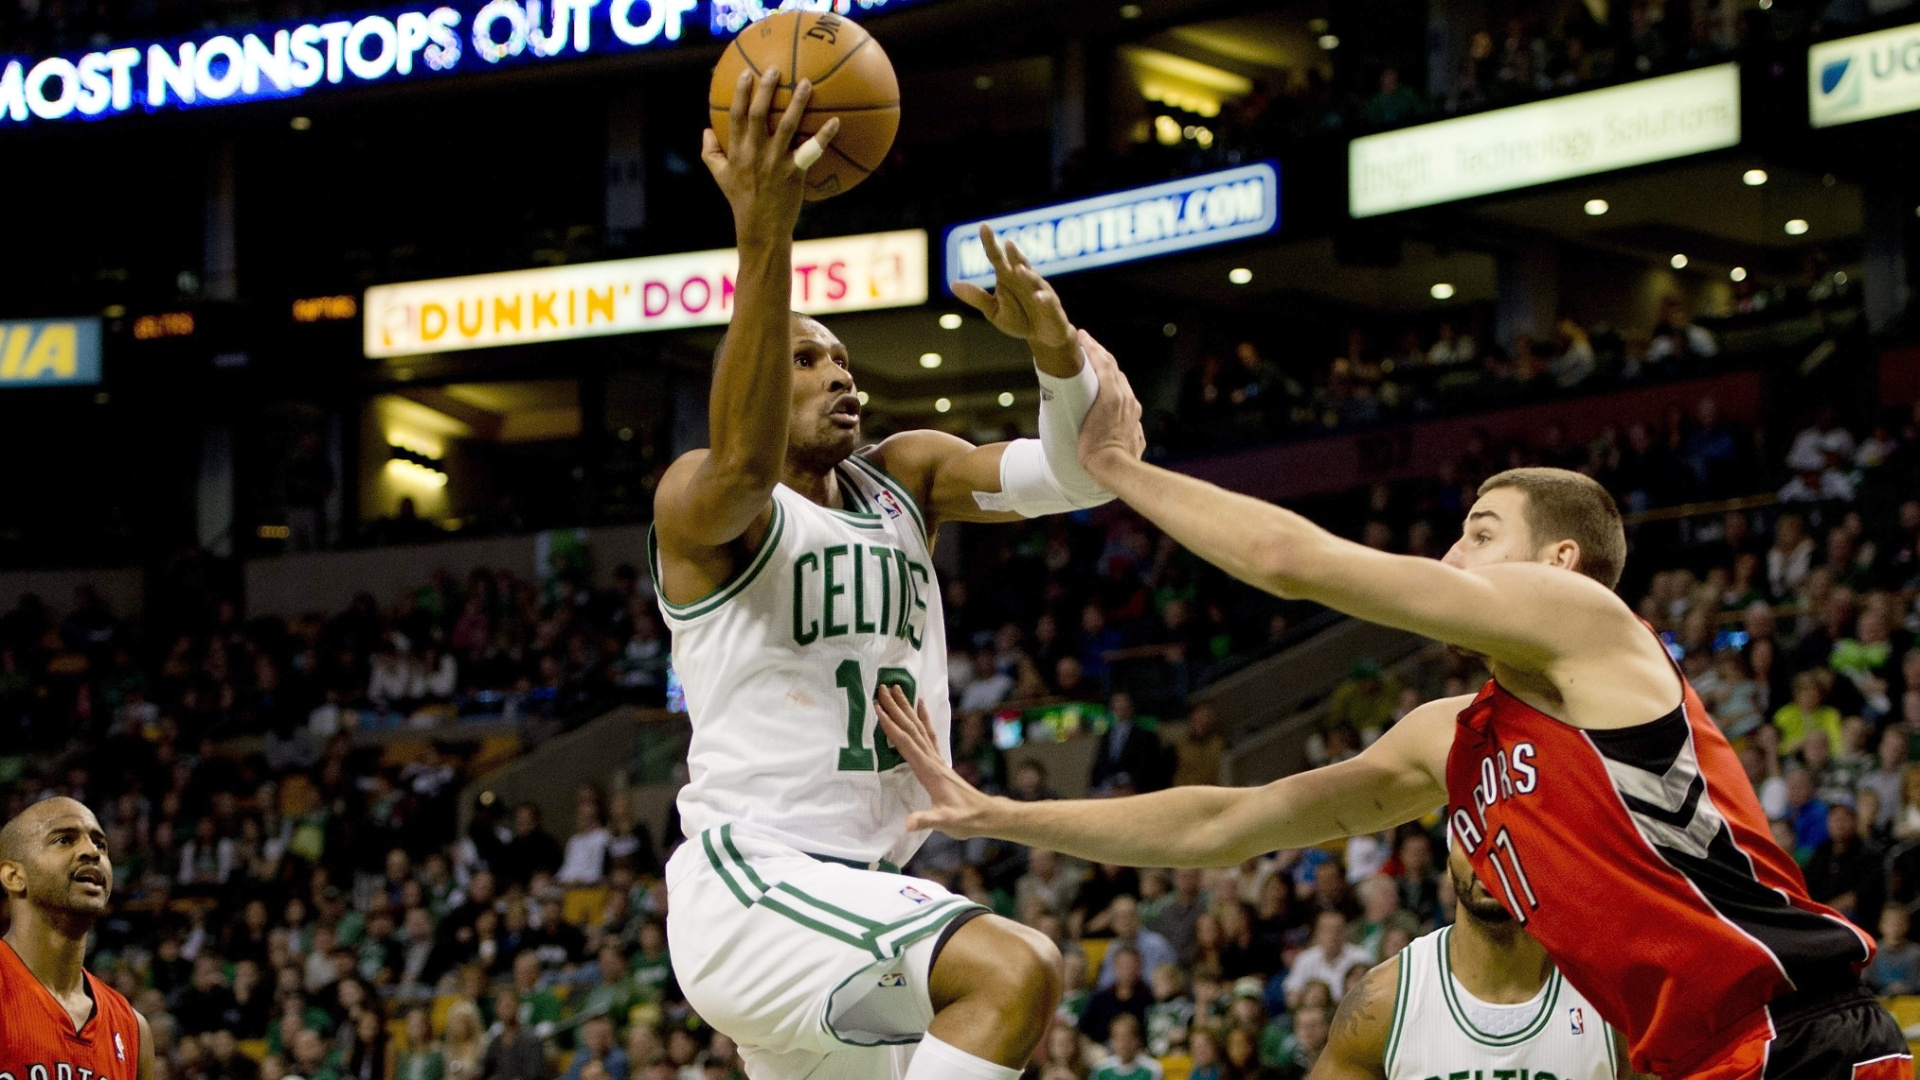 Leandrinho, do Boston Celtics, tenta a bandeja contra o Toronto Raptors